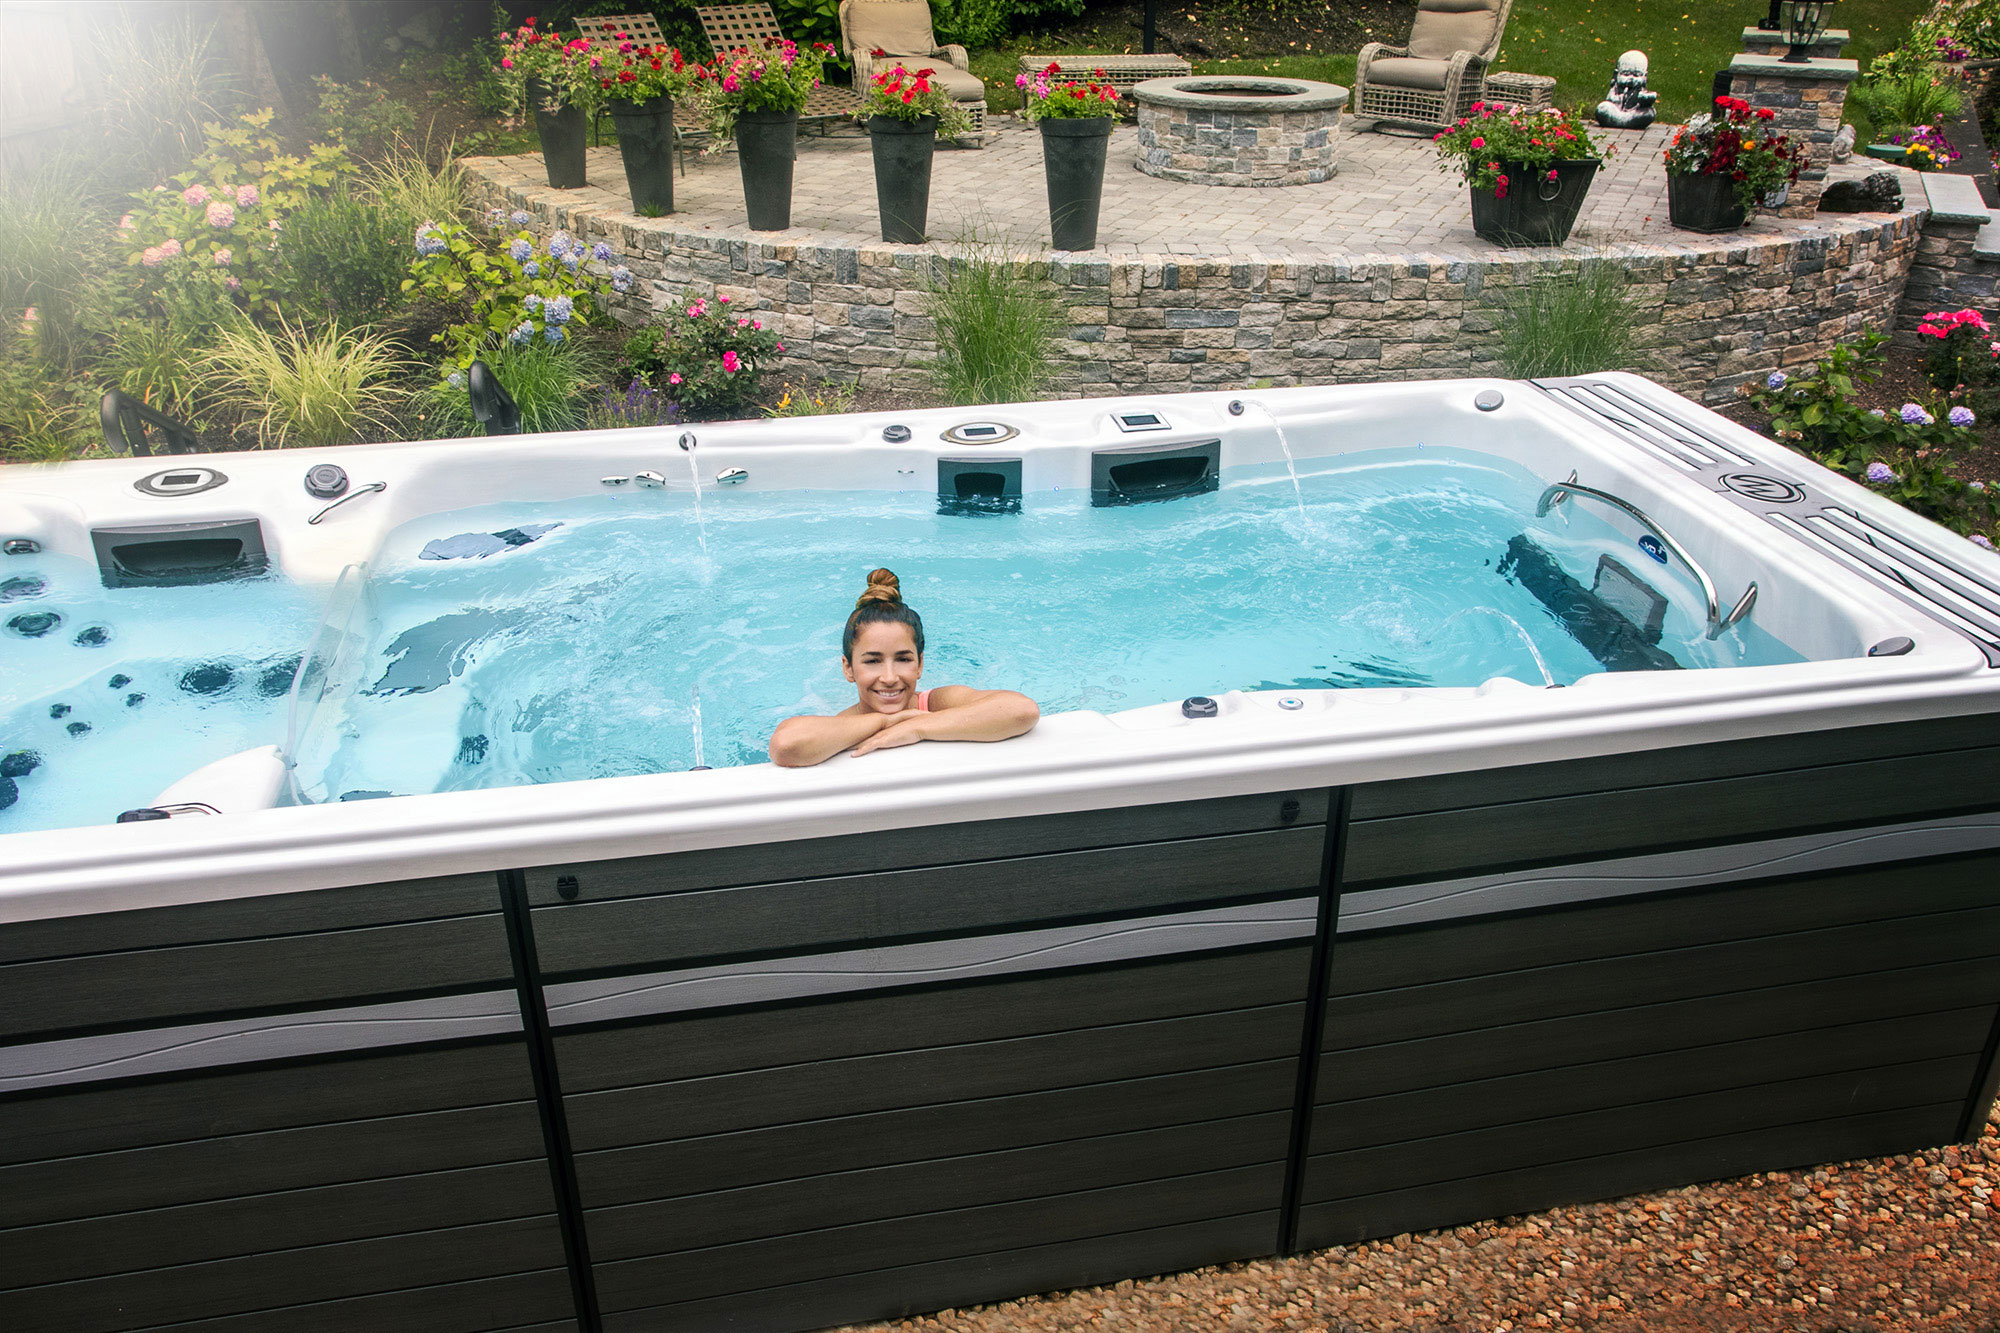 Installation of A Hot Tub in Your House – Why Is It the Best Investment